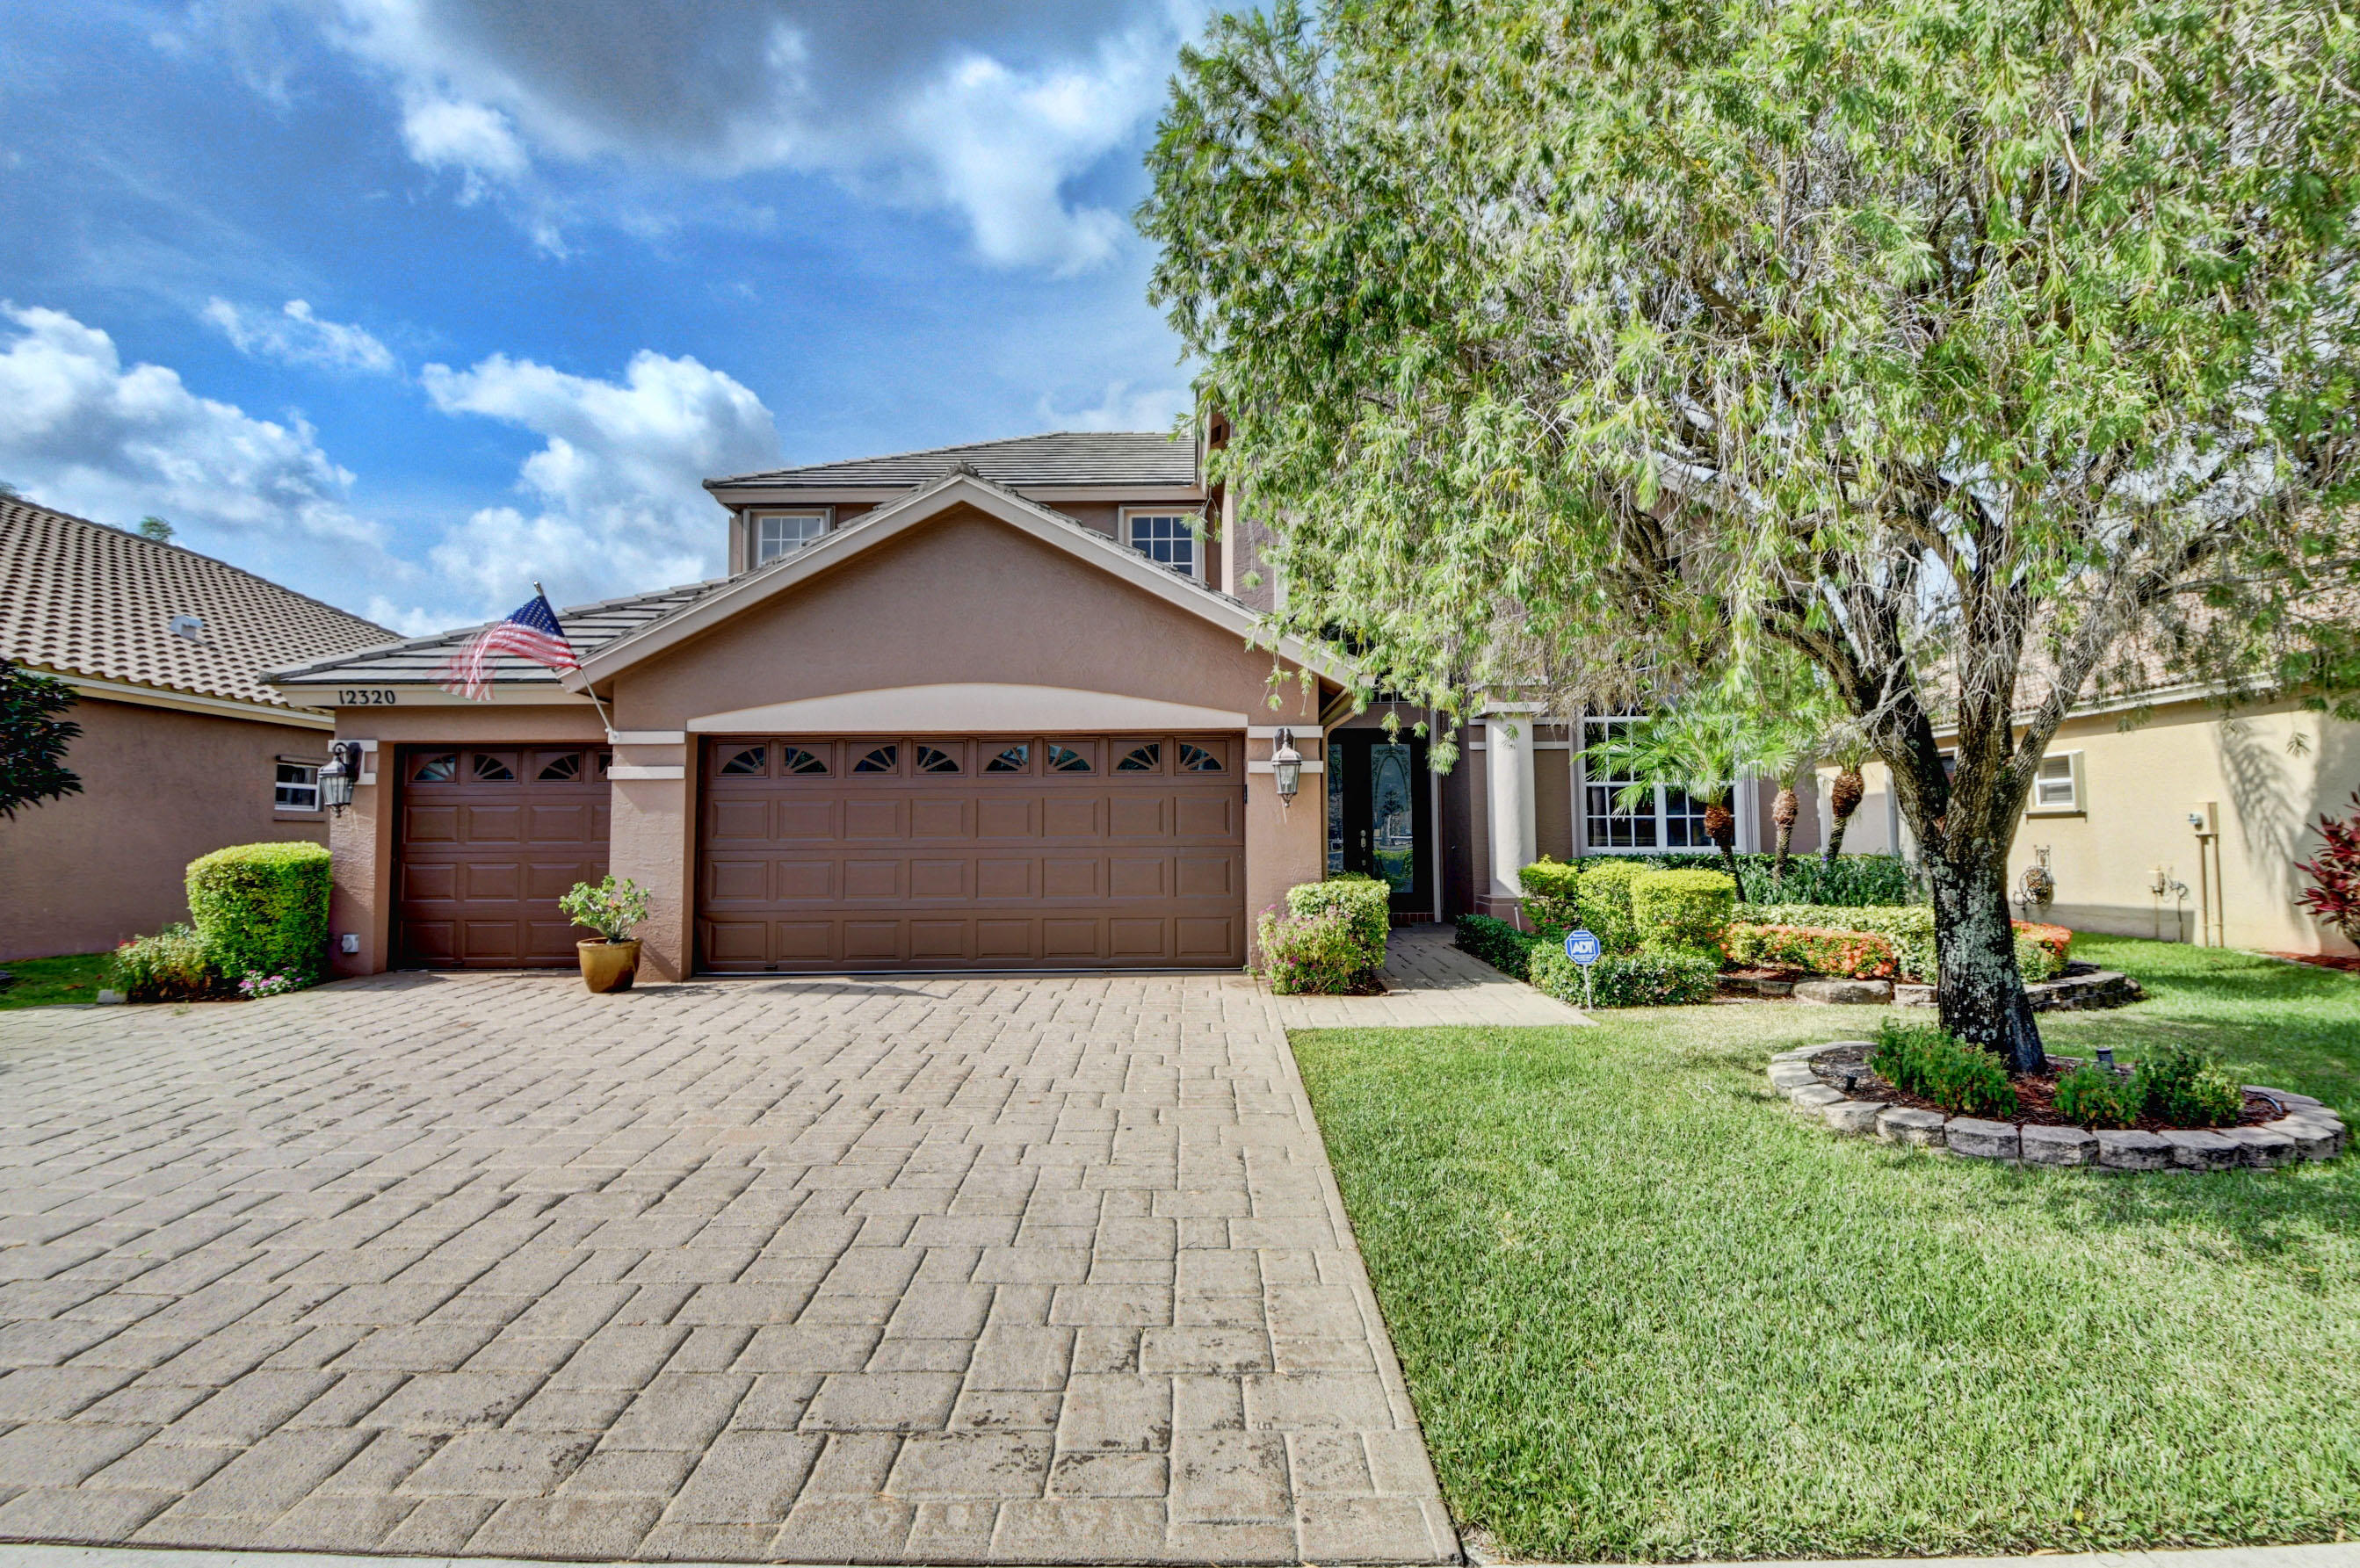 STUNNING custom home boasts an oversized screened pool area with expansive entertaining space overlooking spectactular lake views. This home features one bedroom ensuite on 1st floor with Master and 2 bedrooms upstairs.  Additionally features a large kitchen with granite tile and stainless appliances,  central vac system, UV lighting in both AC units, T.V. mounting systems and a 3 car garage with an extended driveway for added parking.  Come see the communities newly renovated clubhouse, a resort-style olympic size pool, a kiddie pool, playground, a state-of-the art fitness center, six tennis courts, a basketball court, and much more